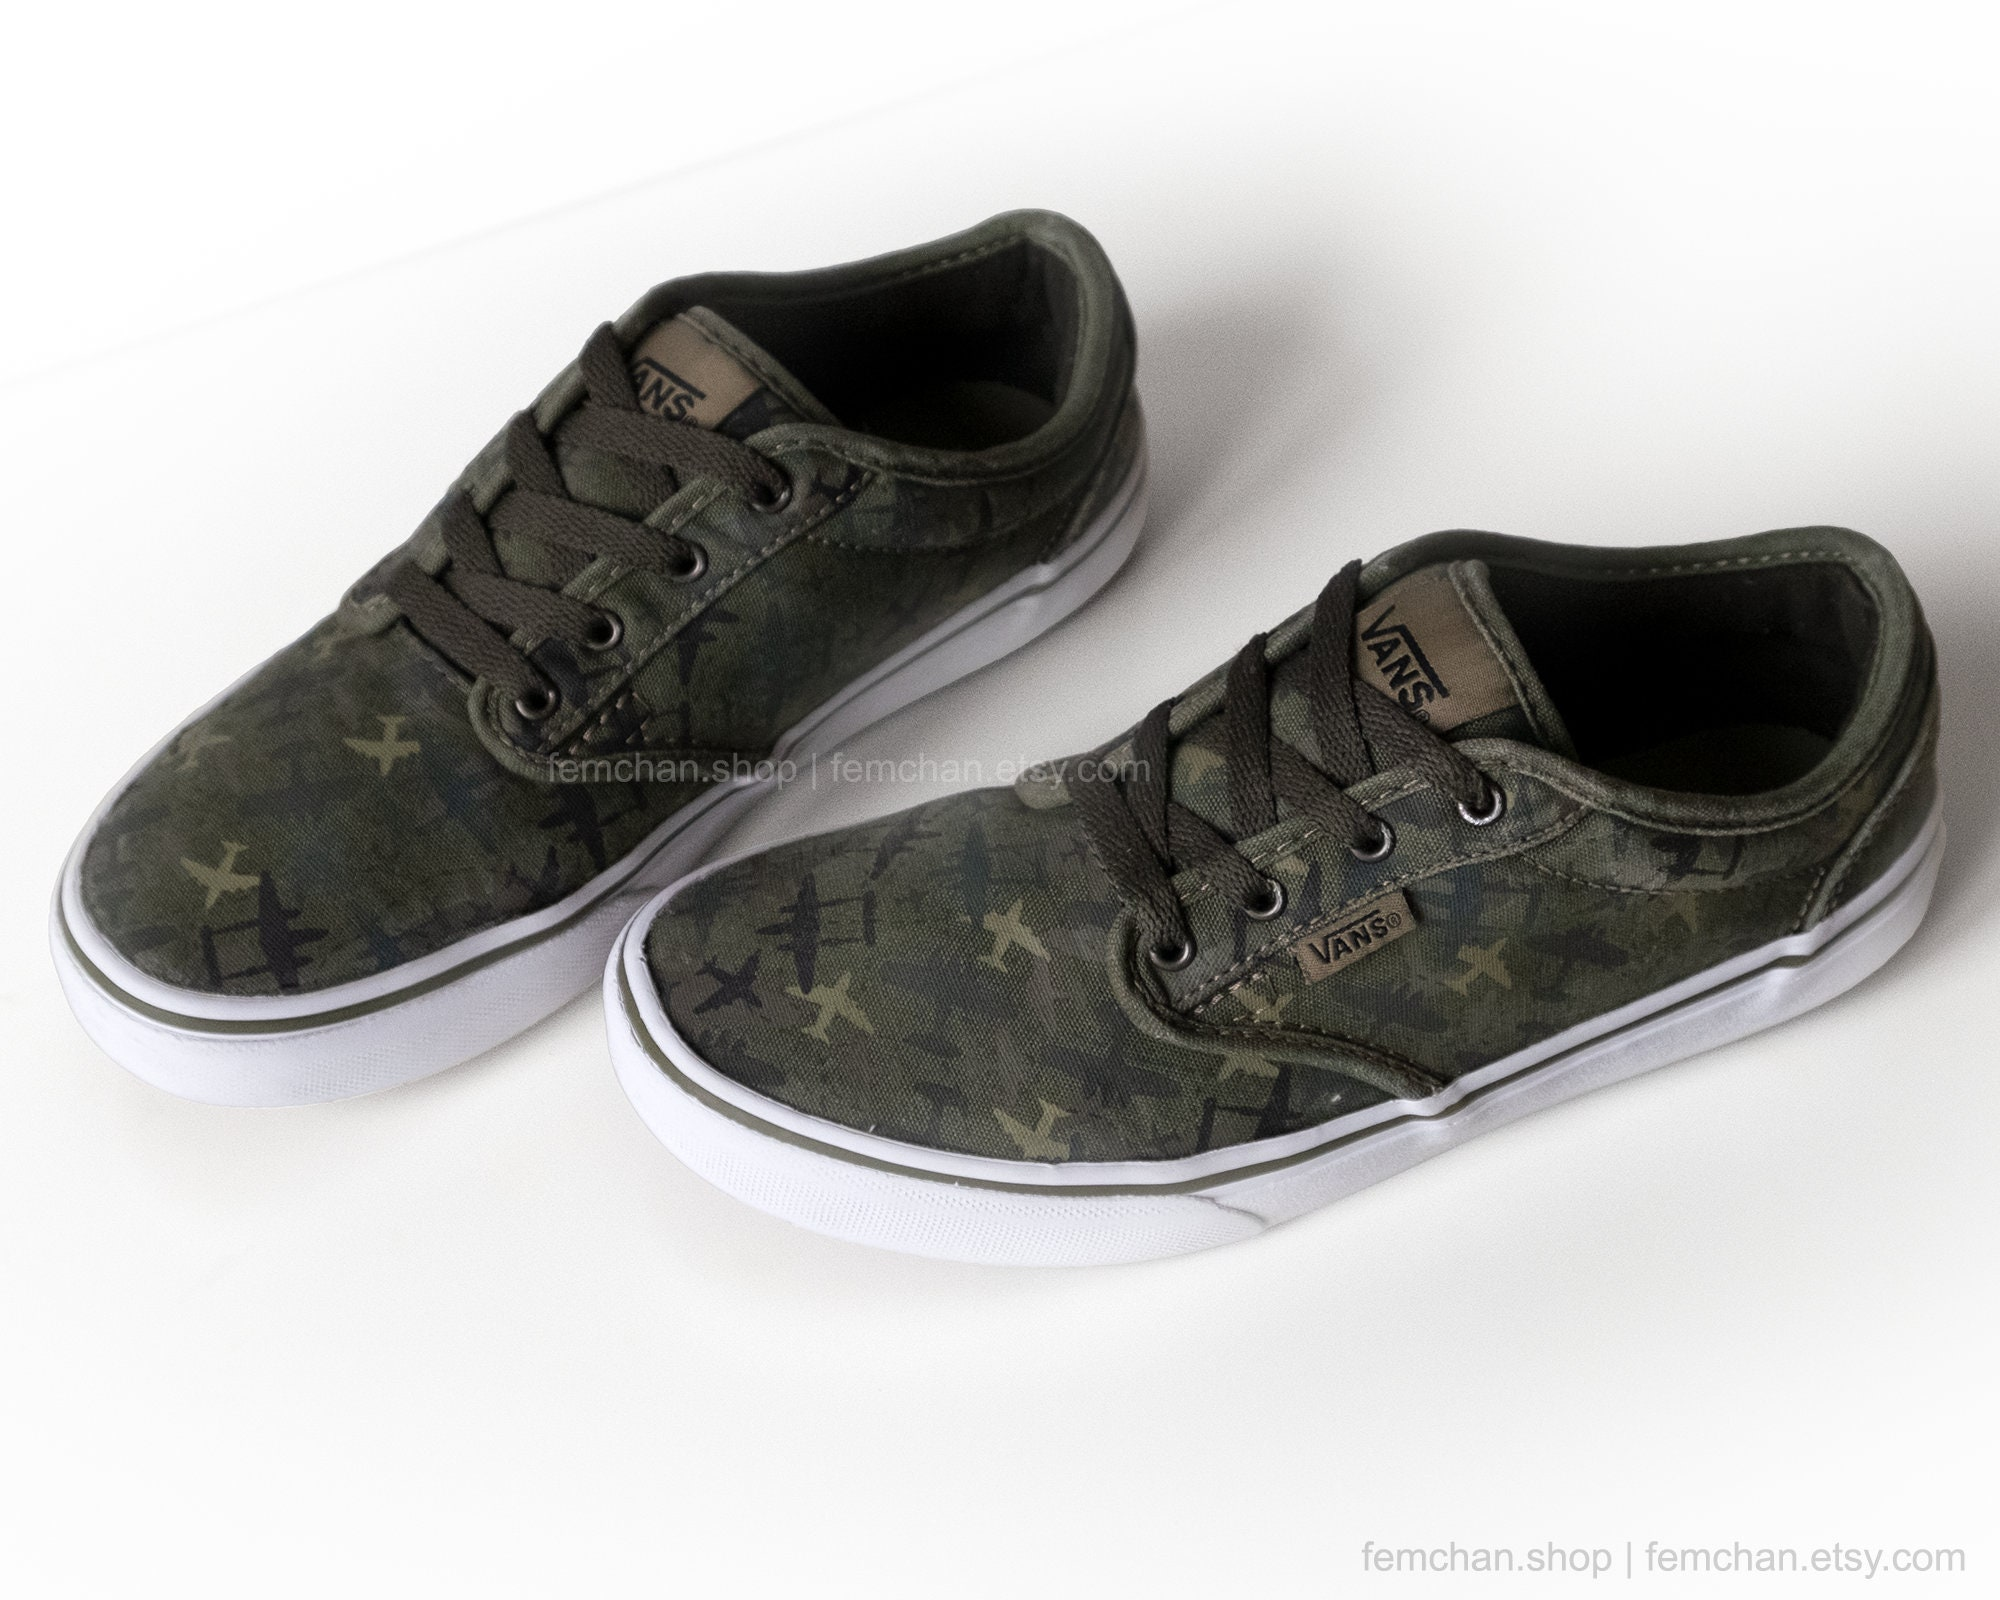 be5d0c4efc Vans Atwood skate shoes with dark green camo print airplane